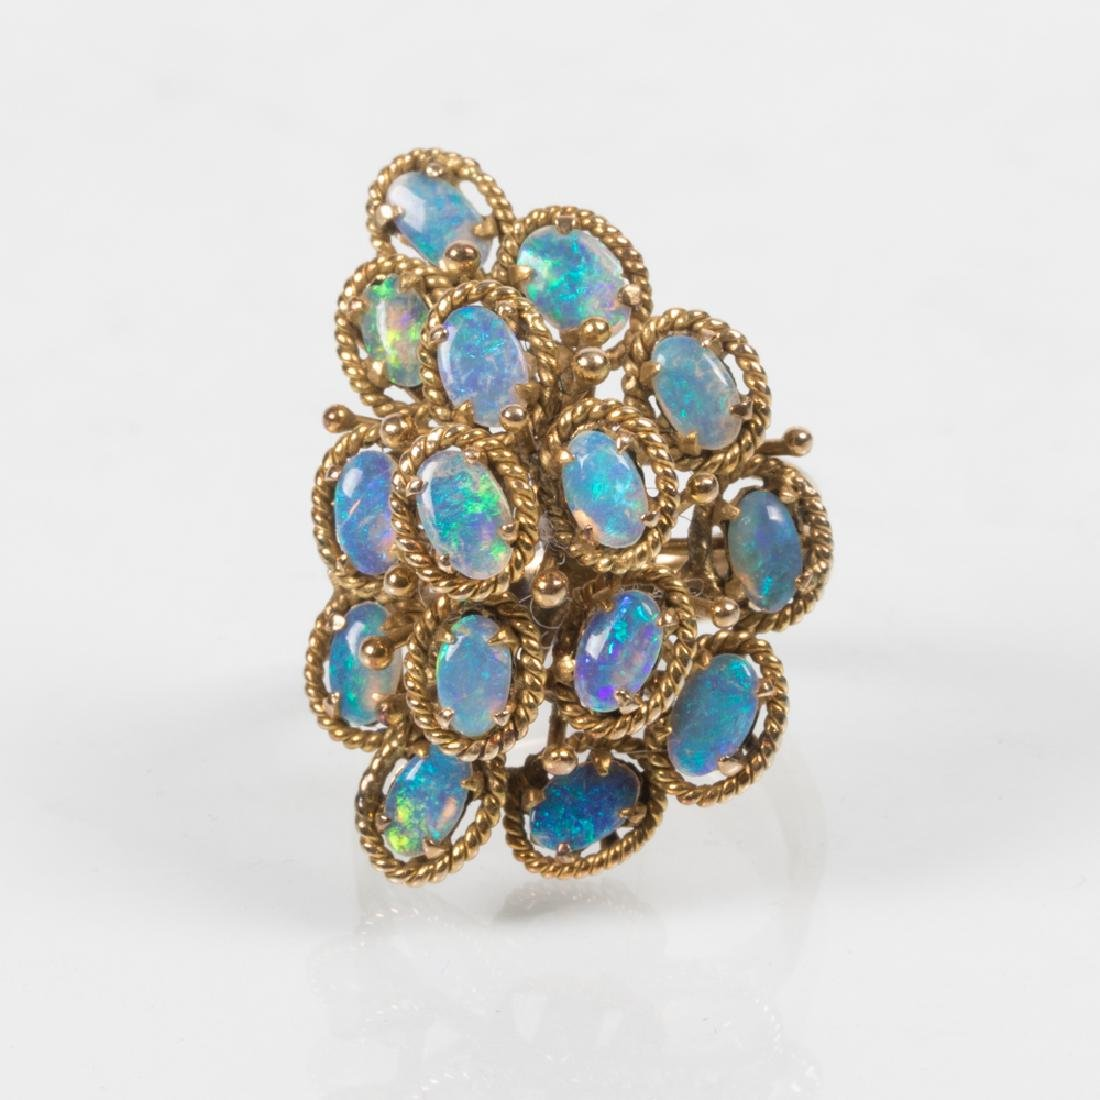 A 14kt. Yellow Gold and Opal Ring,